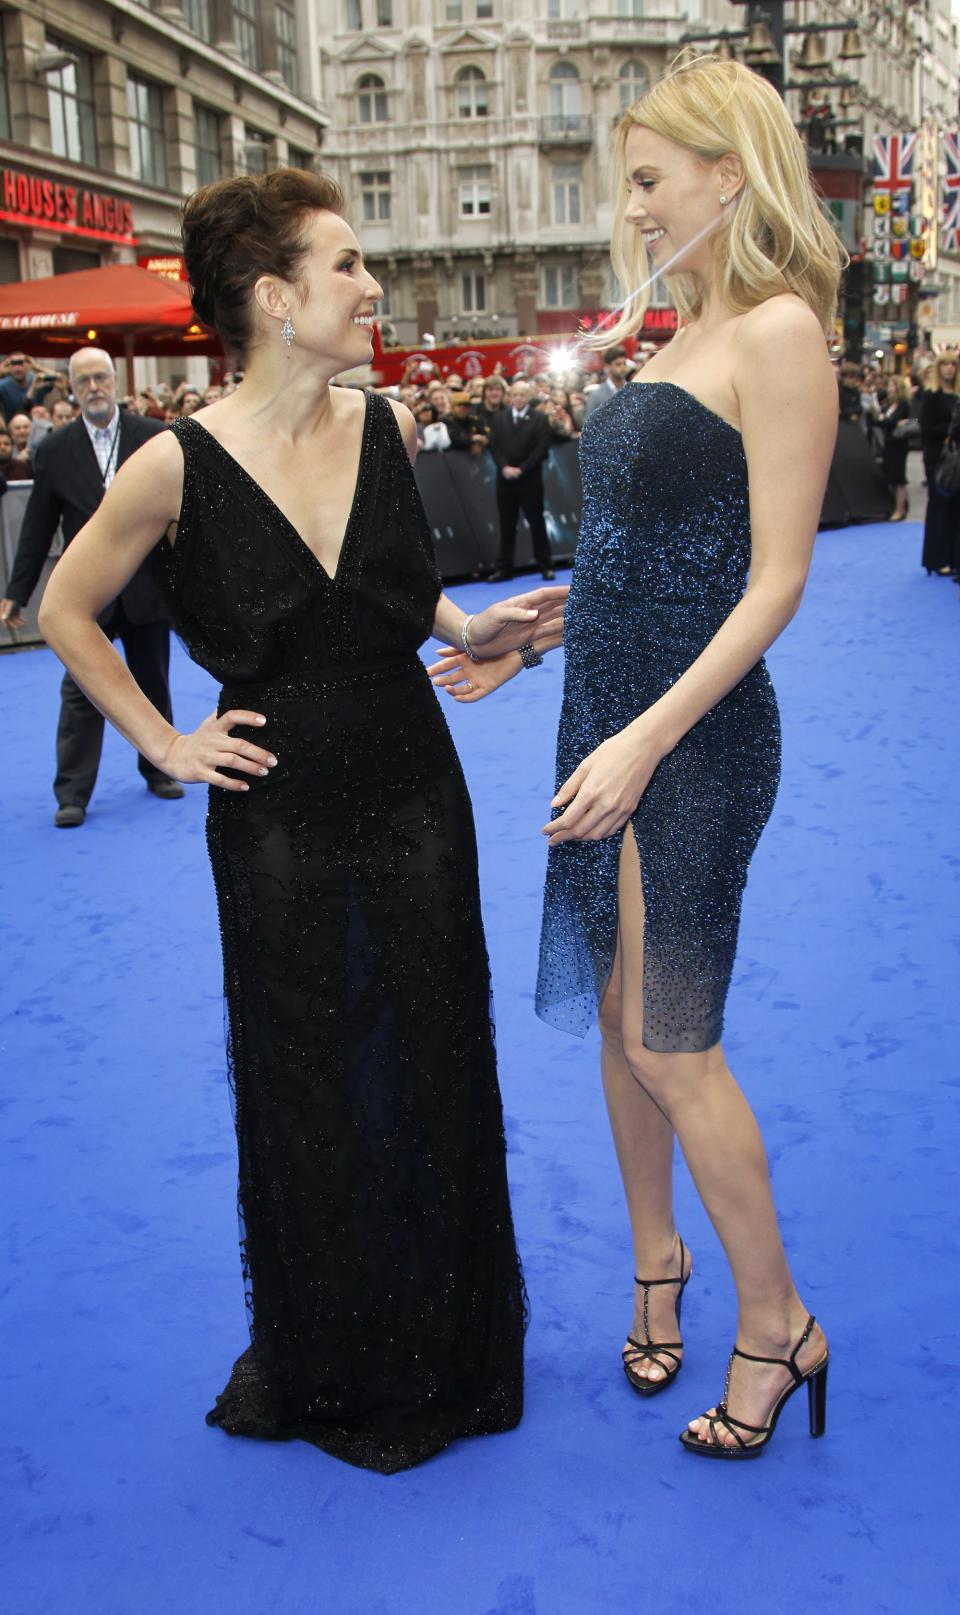 Actresses Noomi Rapace, left, and Charlize Theron greet each other on the blue carpet as they arrive at a central London cinema for the World Premiere of Prometheus, Thursday, May 31, 2012. (AP Photo/Joel Ryan)